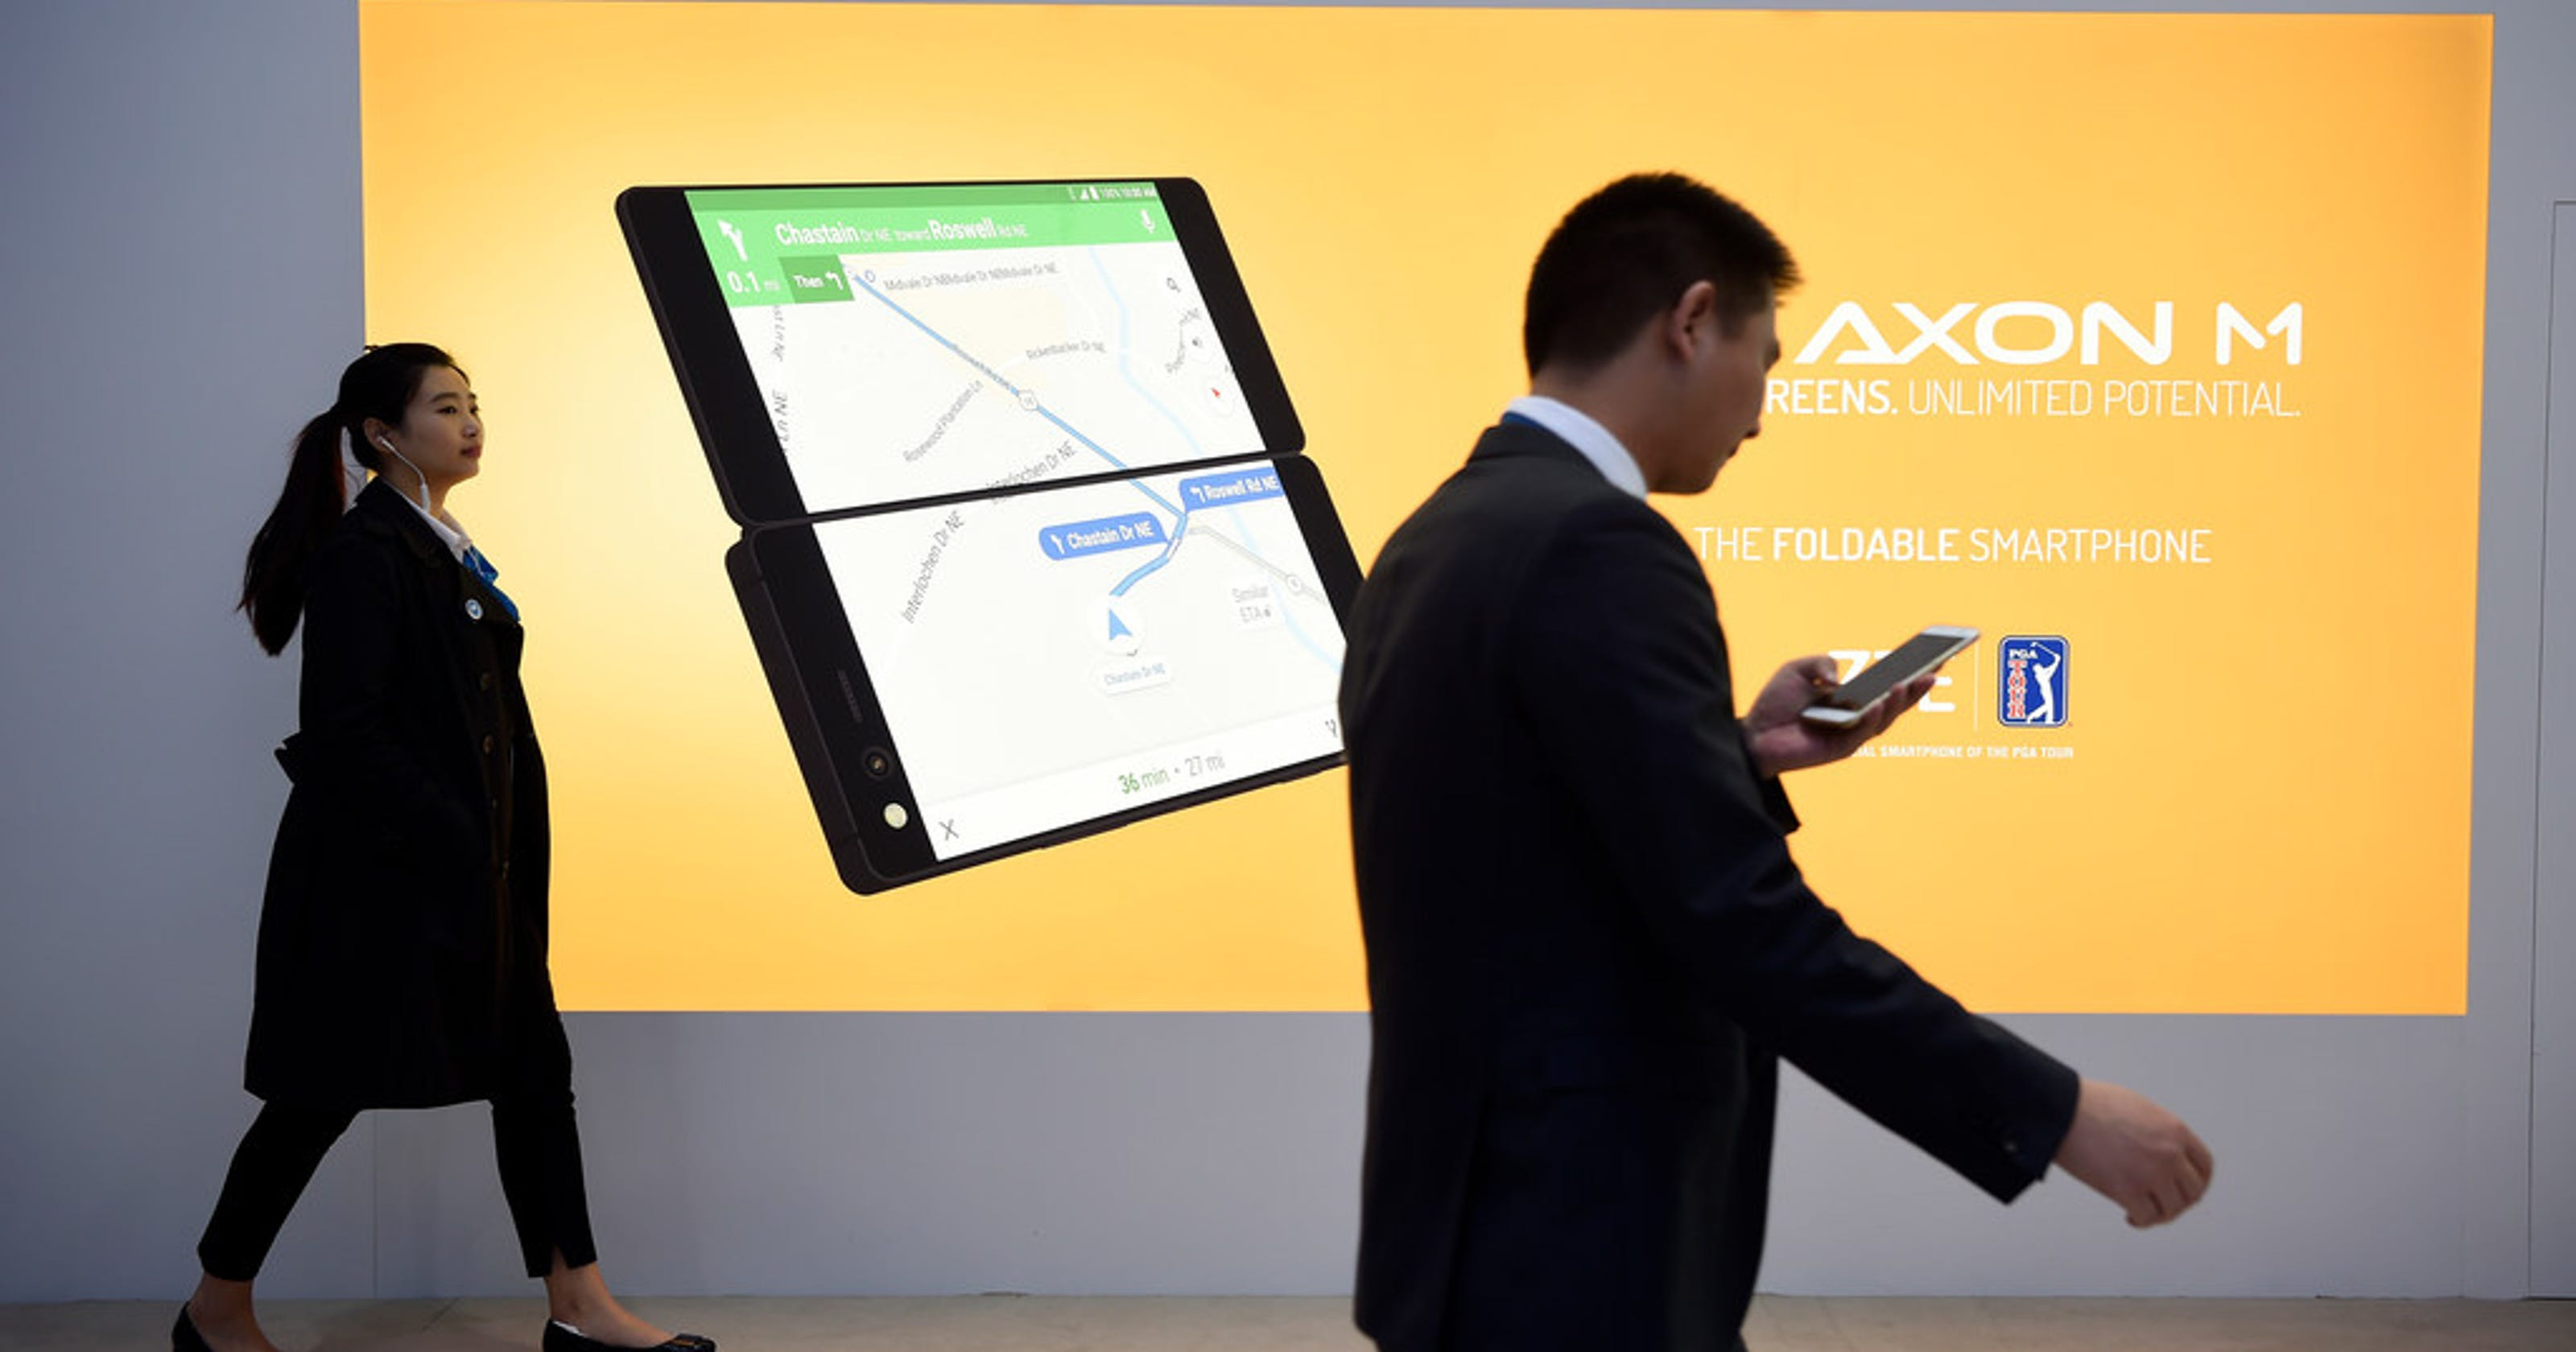 Spy games: Is buying a Chinese smartphone like Huawei and